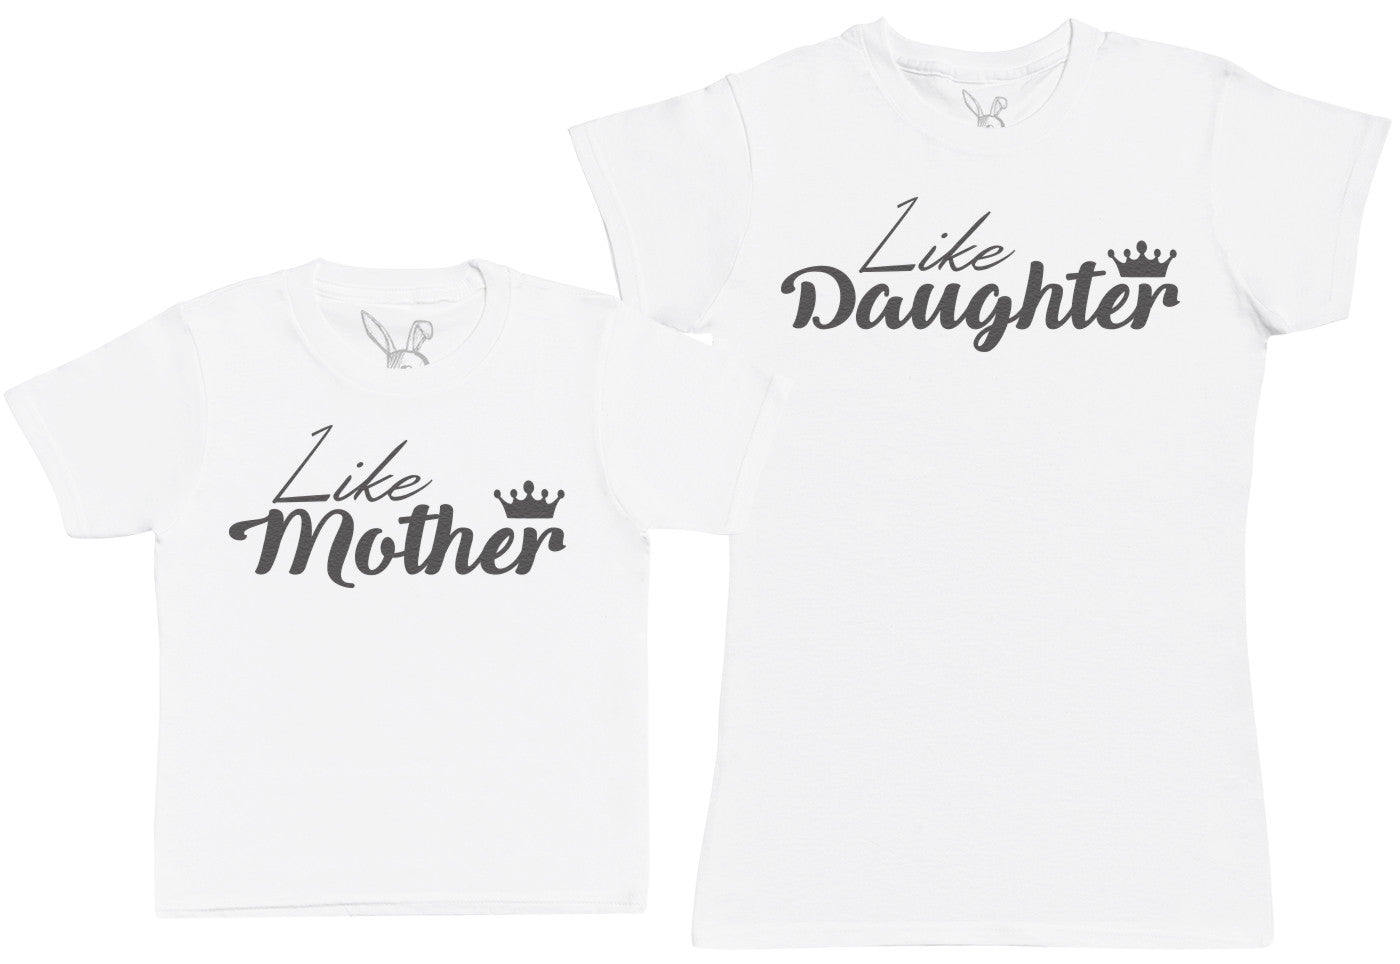 Like Daughter, Like Mother - Kid's Gift Set with Kid's T-Shirt & Mother's T-Shirt